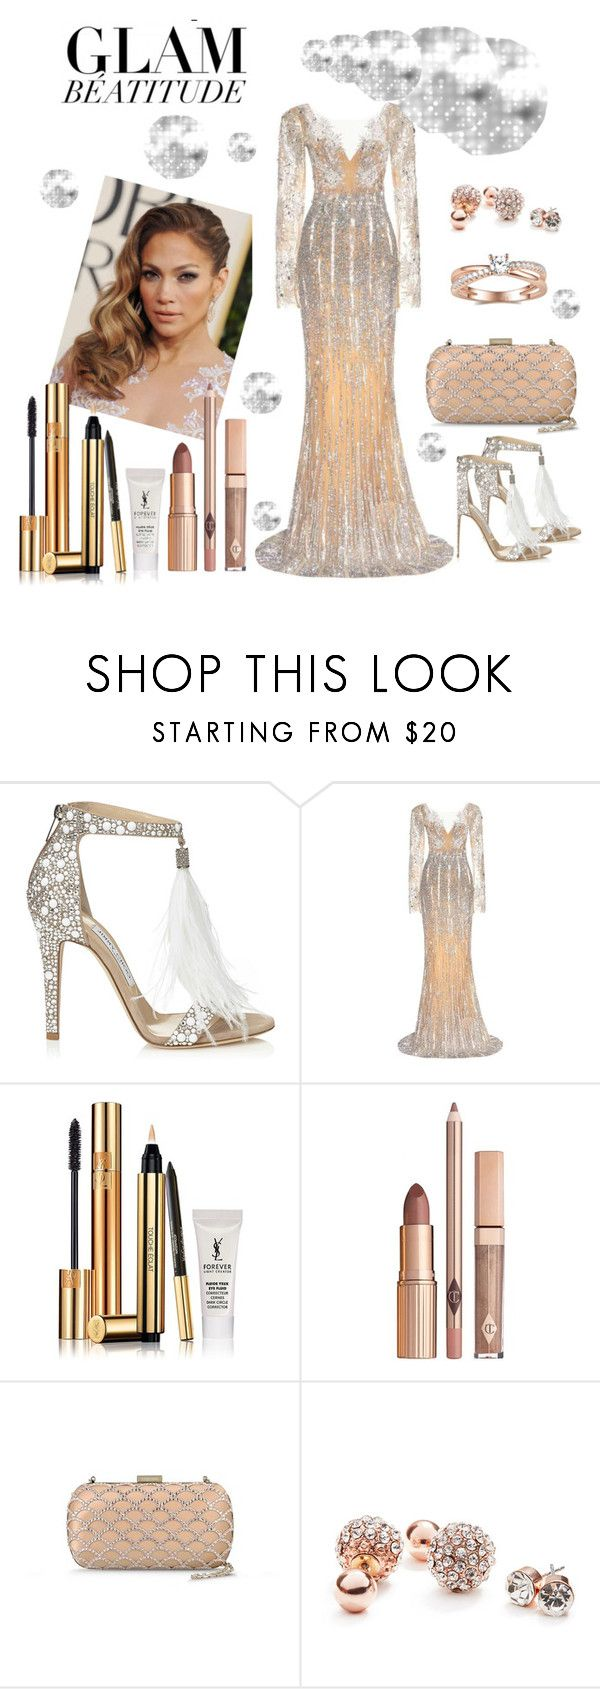 """""""Oscars"""" by xmoonagedaydreamx ❤ liked on Polyvore featuring Jimmy Choo, JLo by Jennifer Lopez, Zuhair Murad, Yves Saint Laurent, Sergio Rossi and GUESS"""